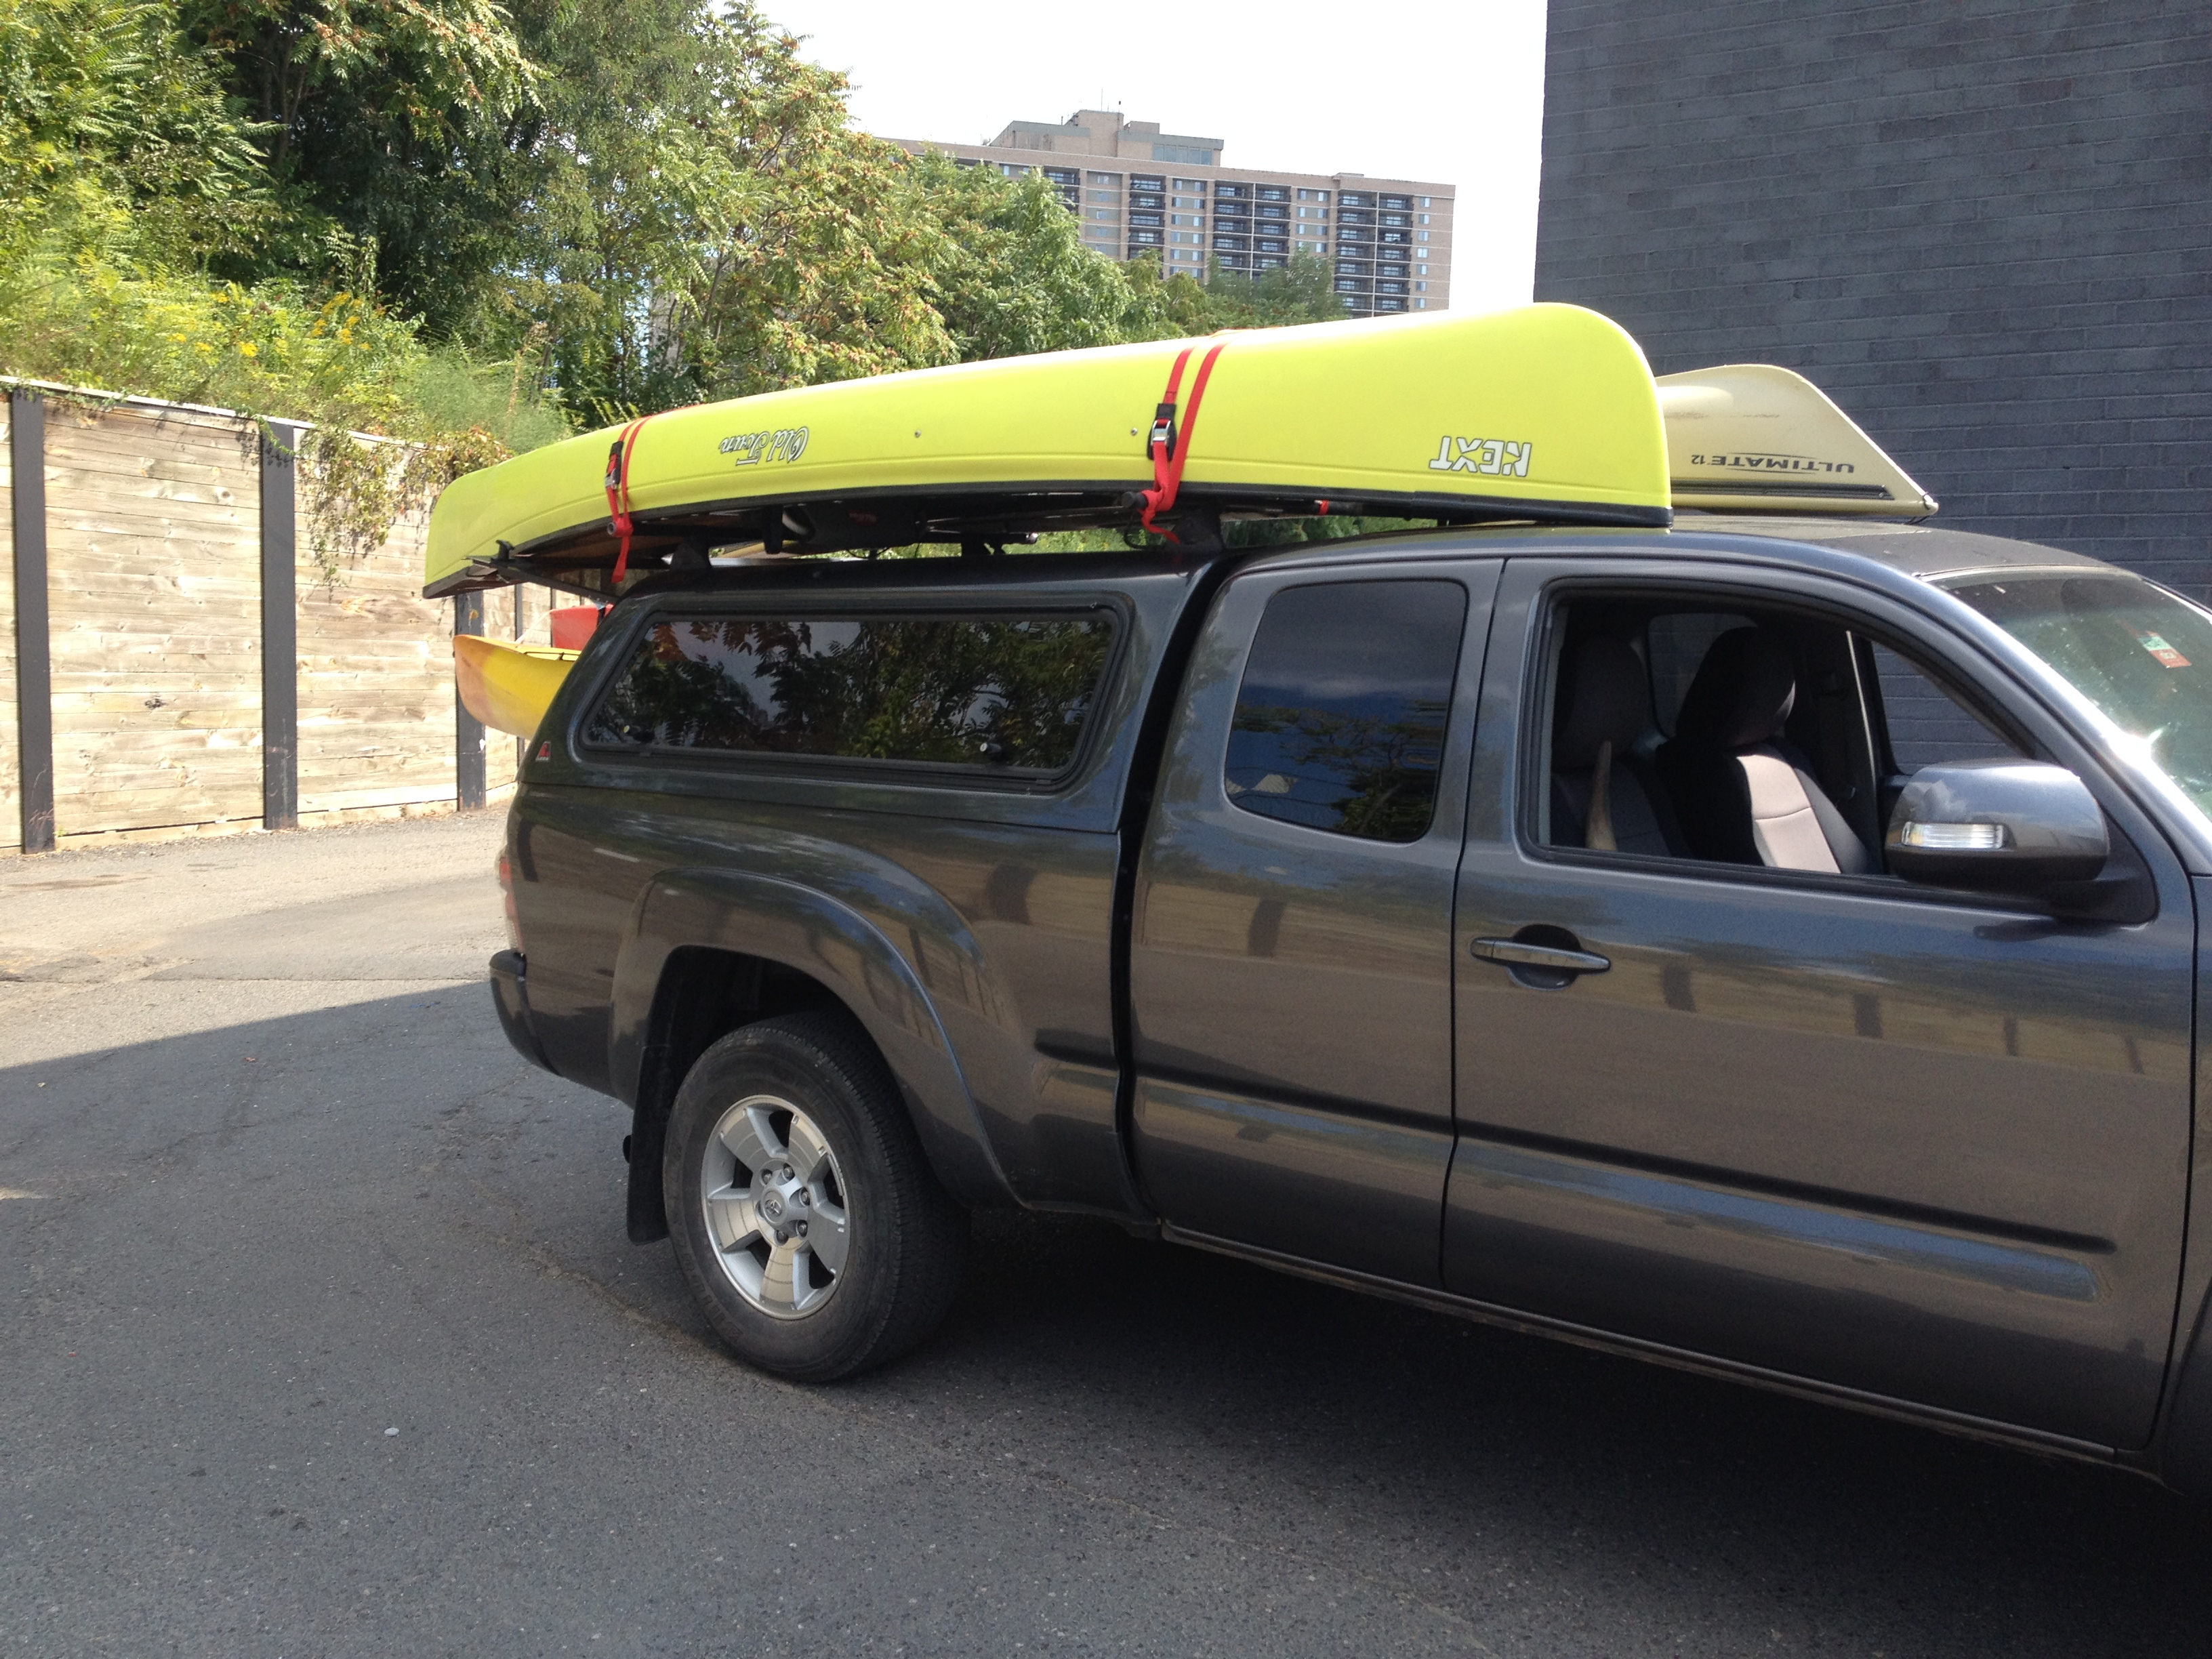 Last Month While At REI To Purchase A Replacement Clip For My Roof Rack, I  Saw A NEXT Canoe Hanging From The Ceiling. Before I Knew What Had Happened,  ...